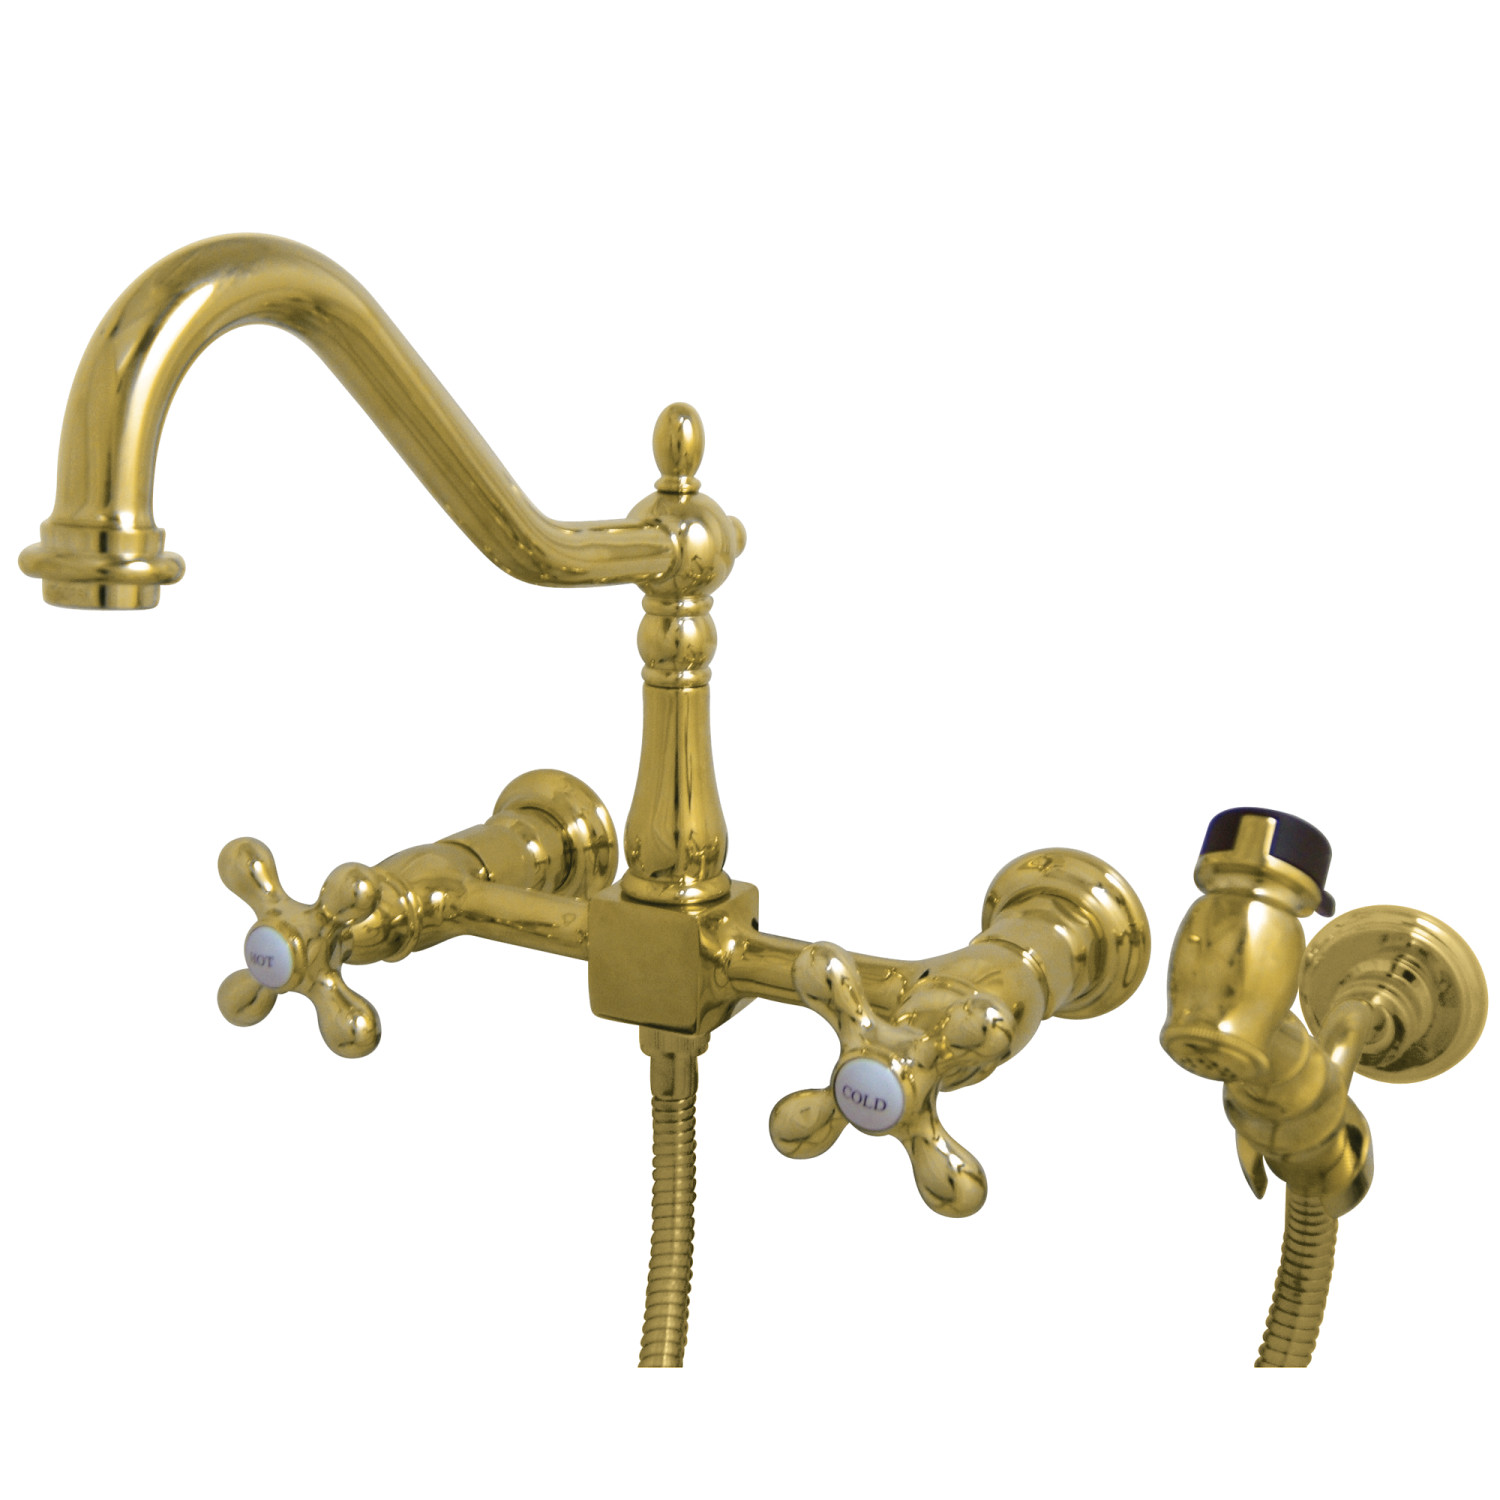 elements of design es1242axbs 8 inch centerset wall mount kitchen faucet with brass sprayer polished brass